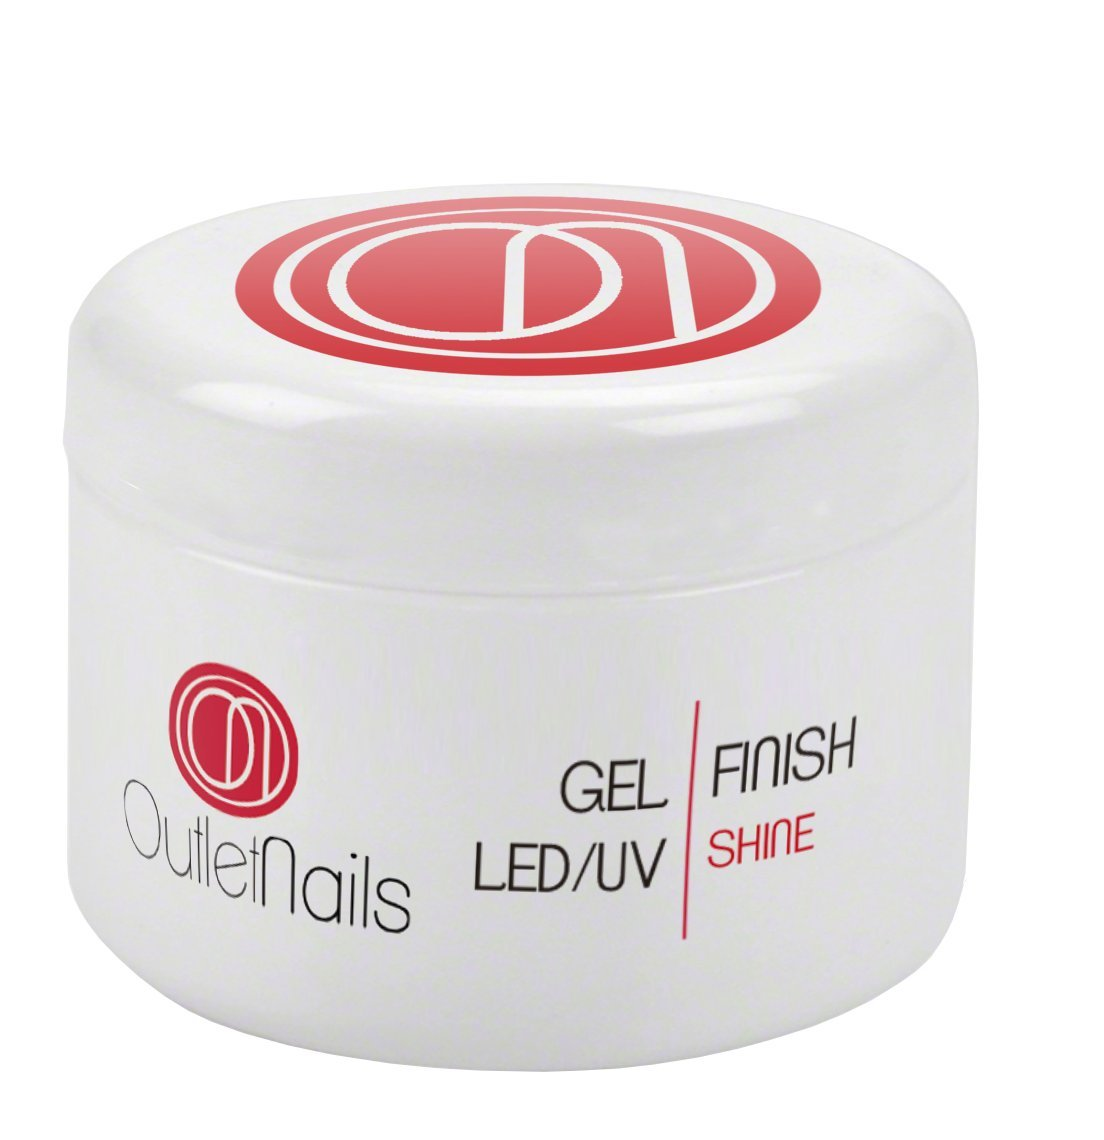 Gel Ultra Brillo para uñas de gel UV/LED 50ml/Led Gel Finalizador Brillo Nails/Finish Shine Gel 50g/Outlet Nails Ser Beauty S.L.